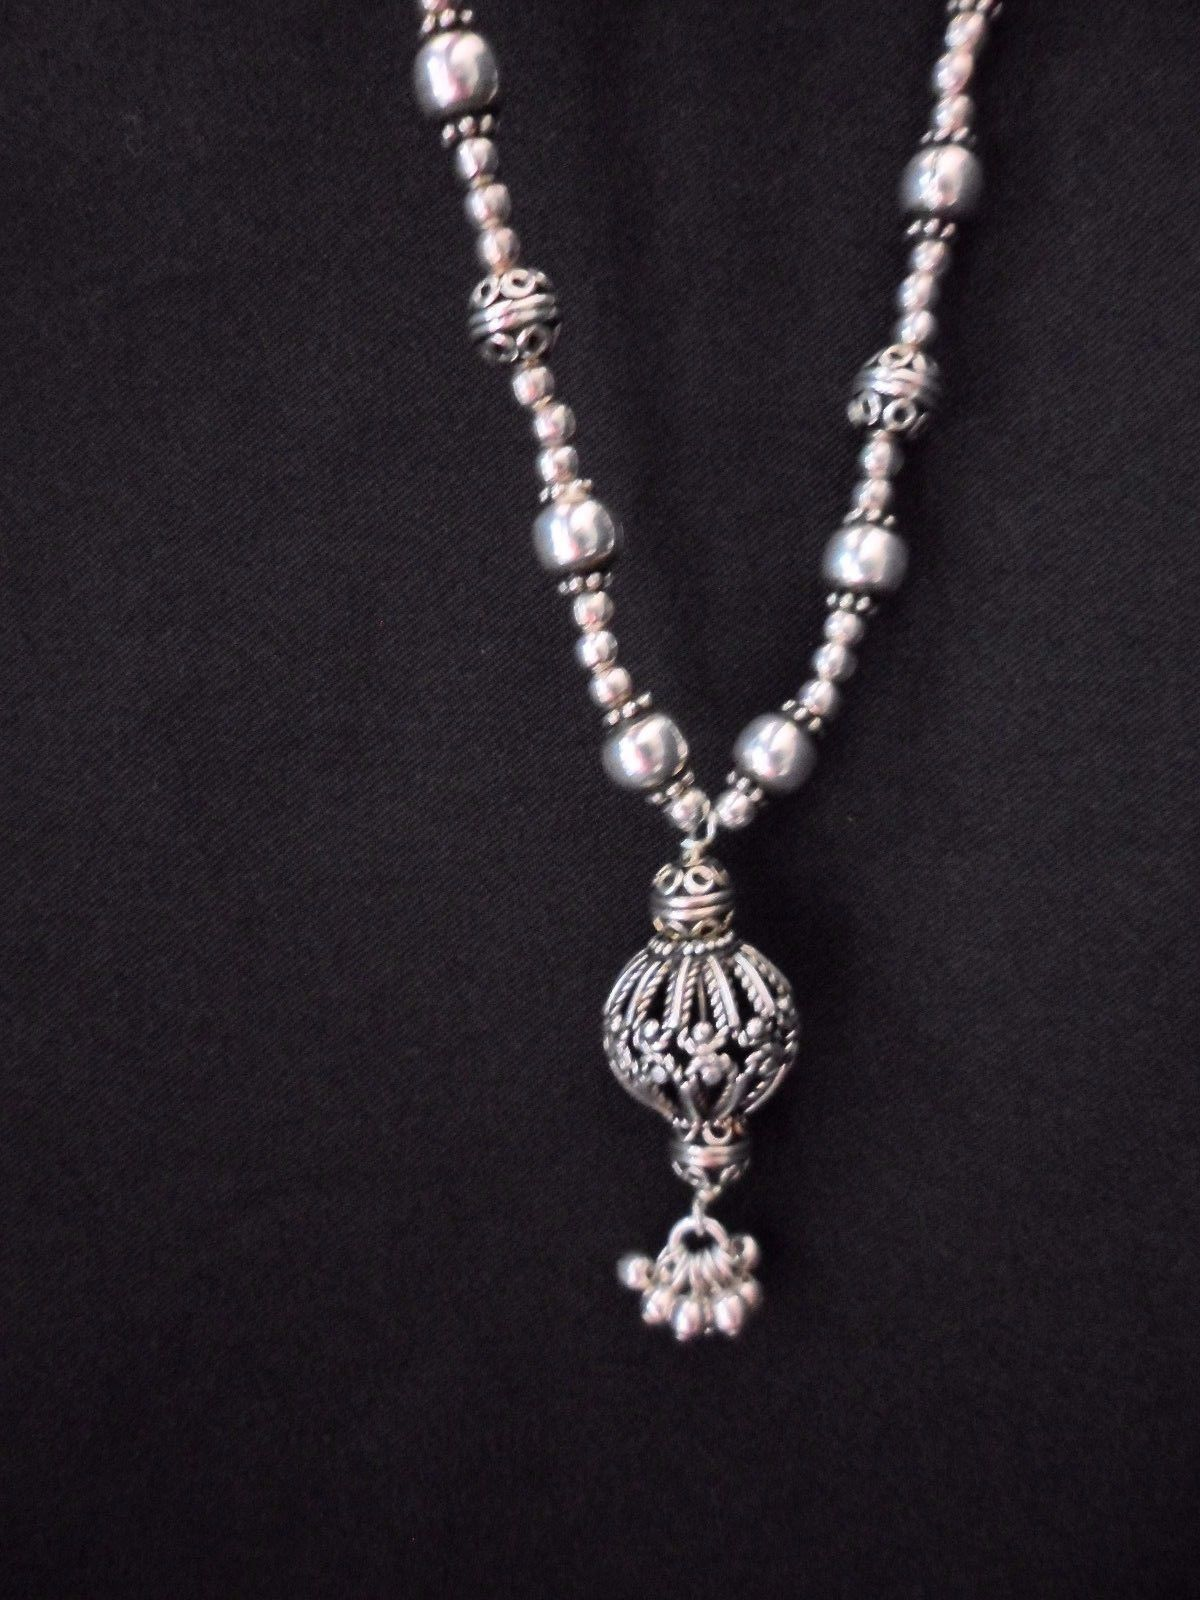 "Primary image for Sterling Silver Filagree Ball 17"" Necklace Ornate 42 grams"